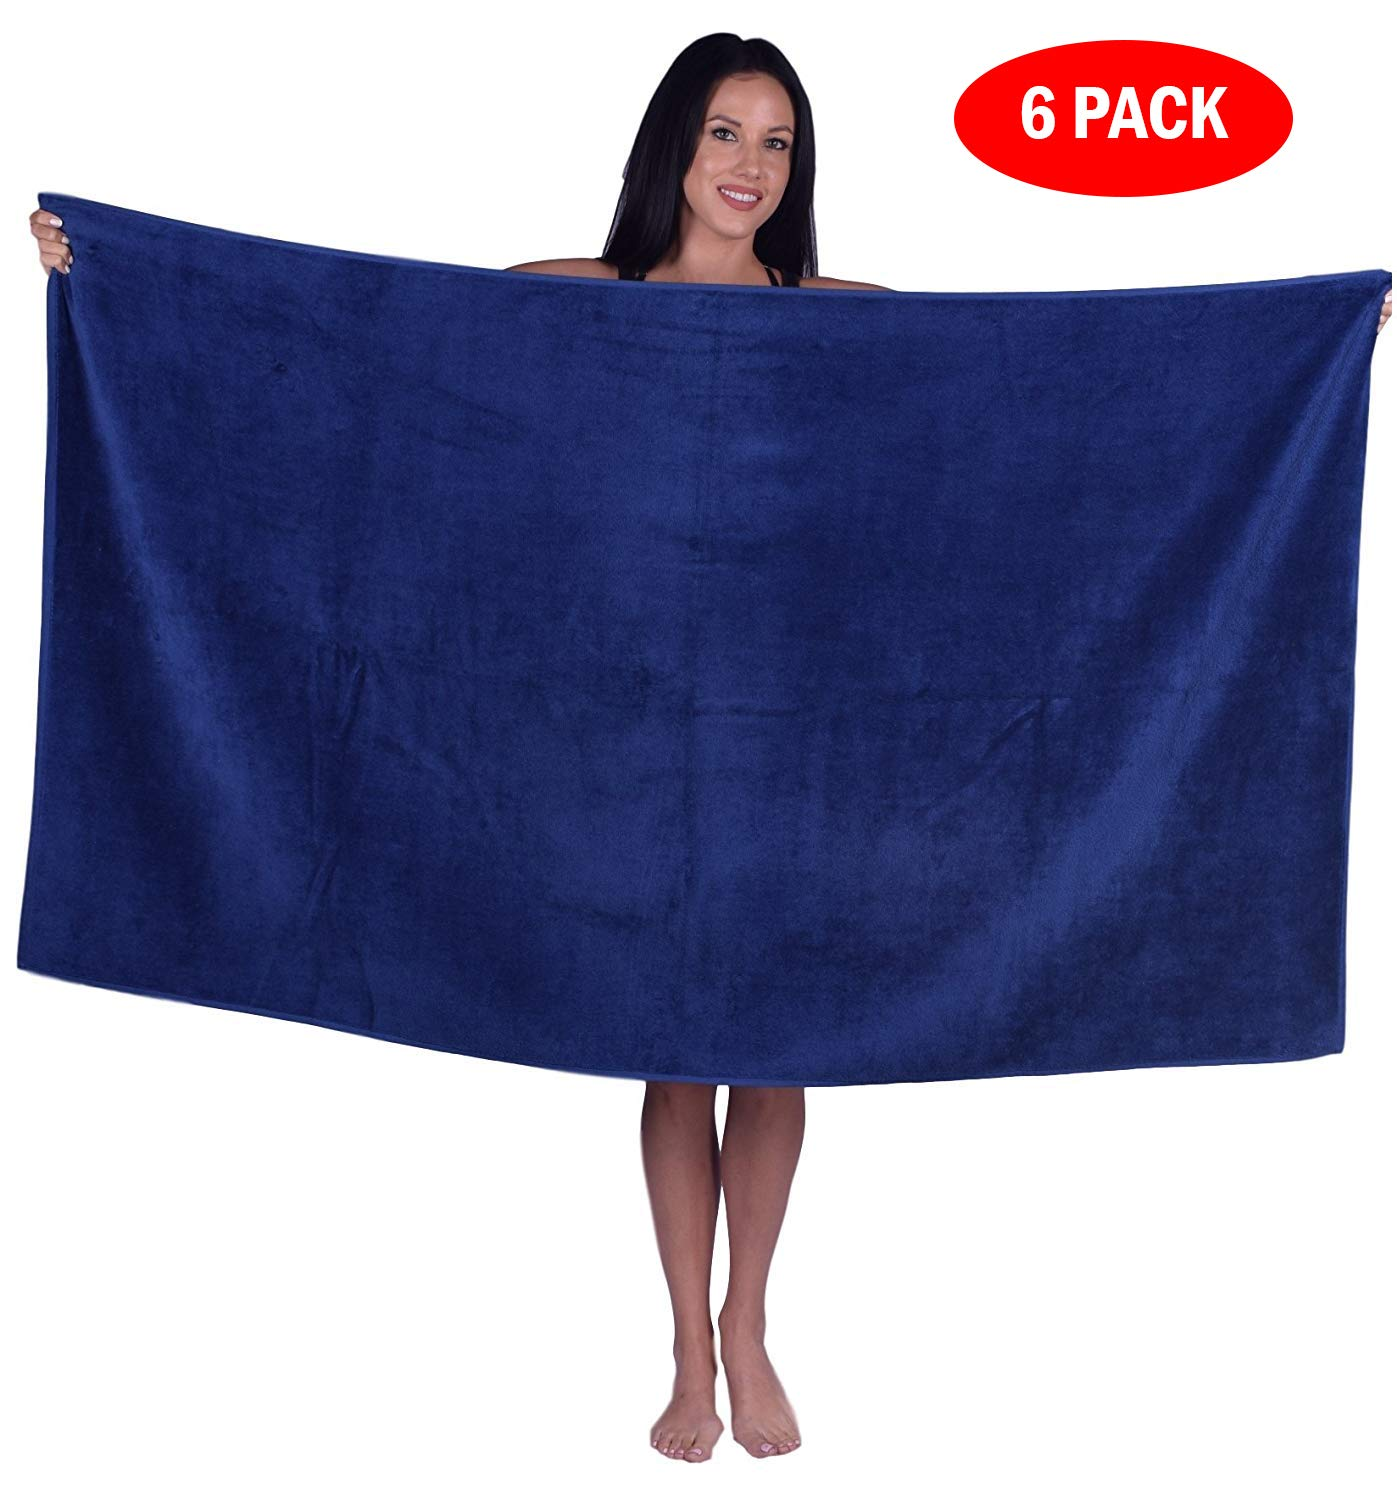 Turquoise Textile 100% Turkish Cotton Eco-Friendly Oversize Solid Pool Beach Towel, 35x60 Inch (6 Pack, Navy Blue)